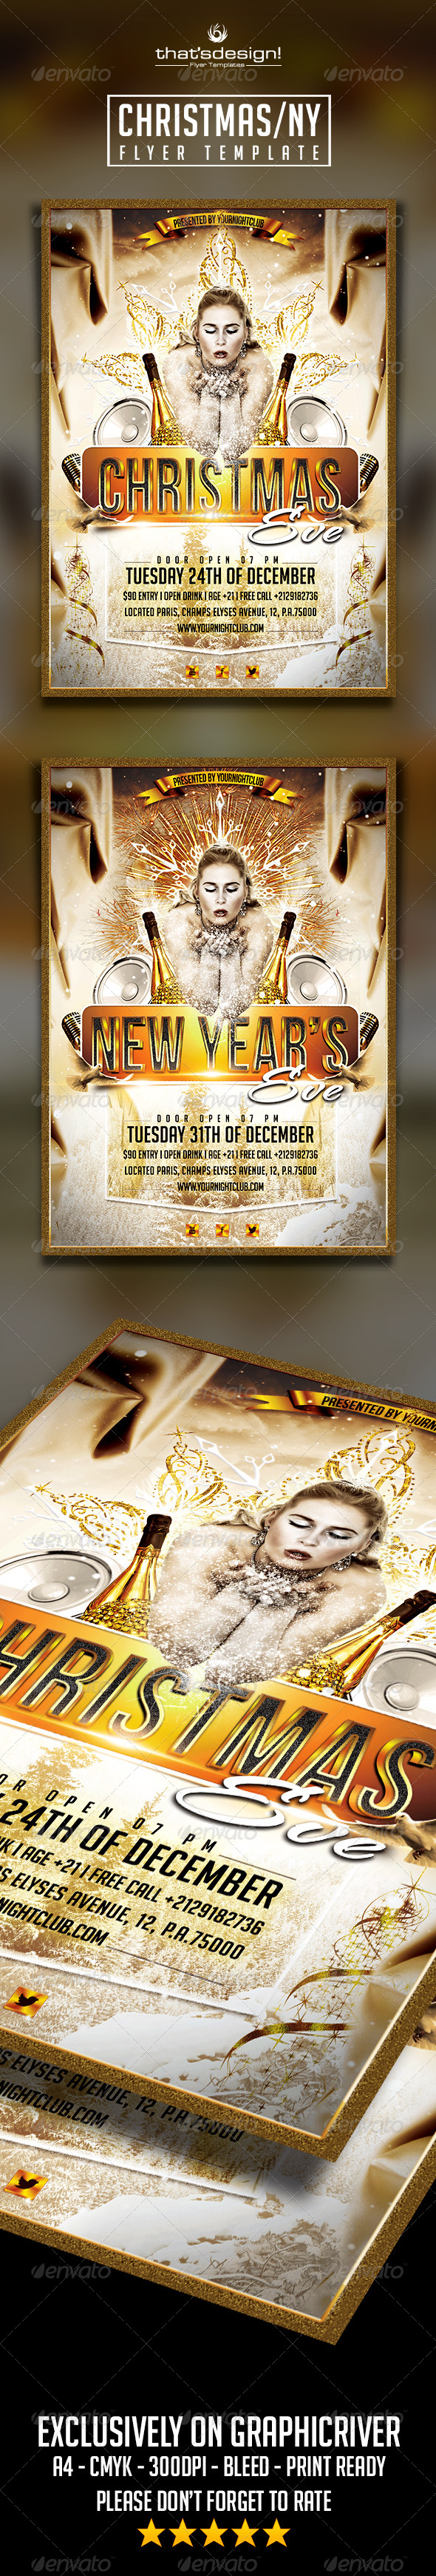 New Year's / Christmas Eve Flyers - Holidays Events